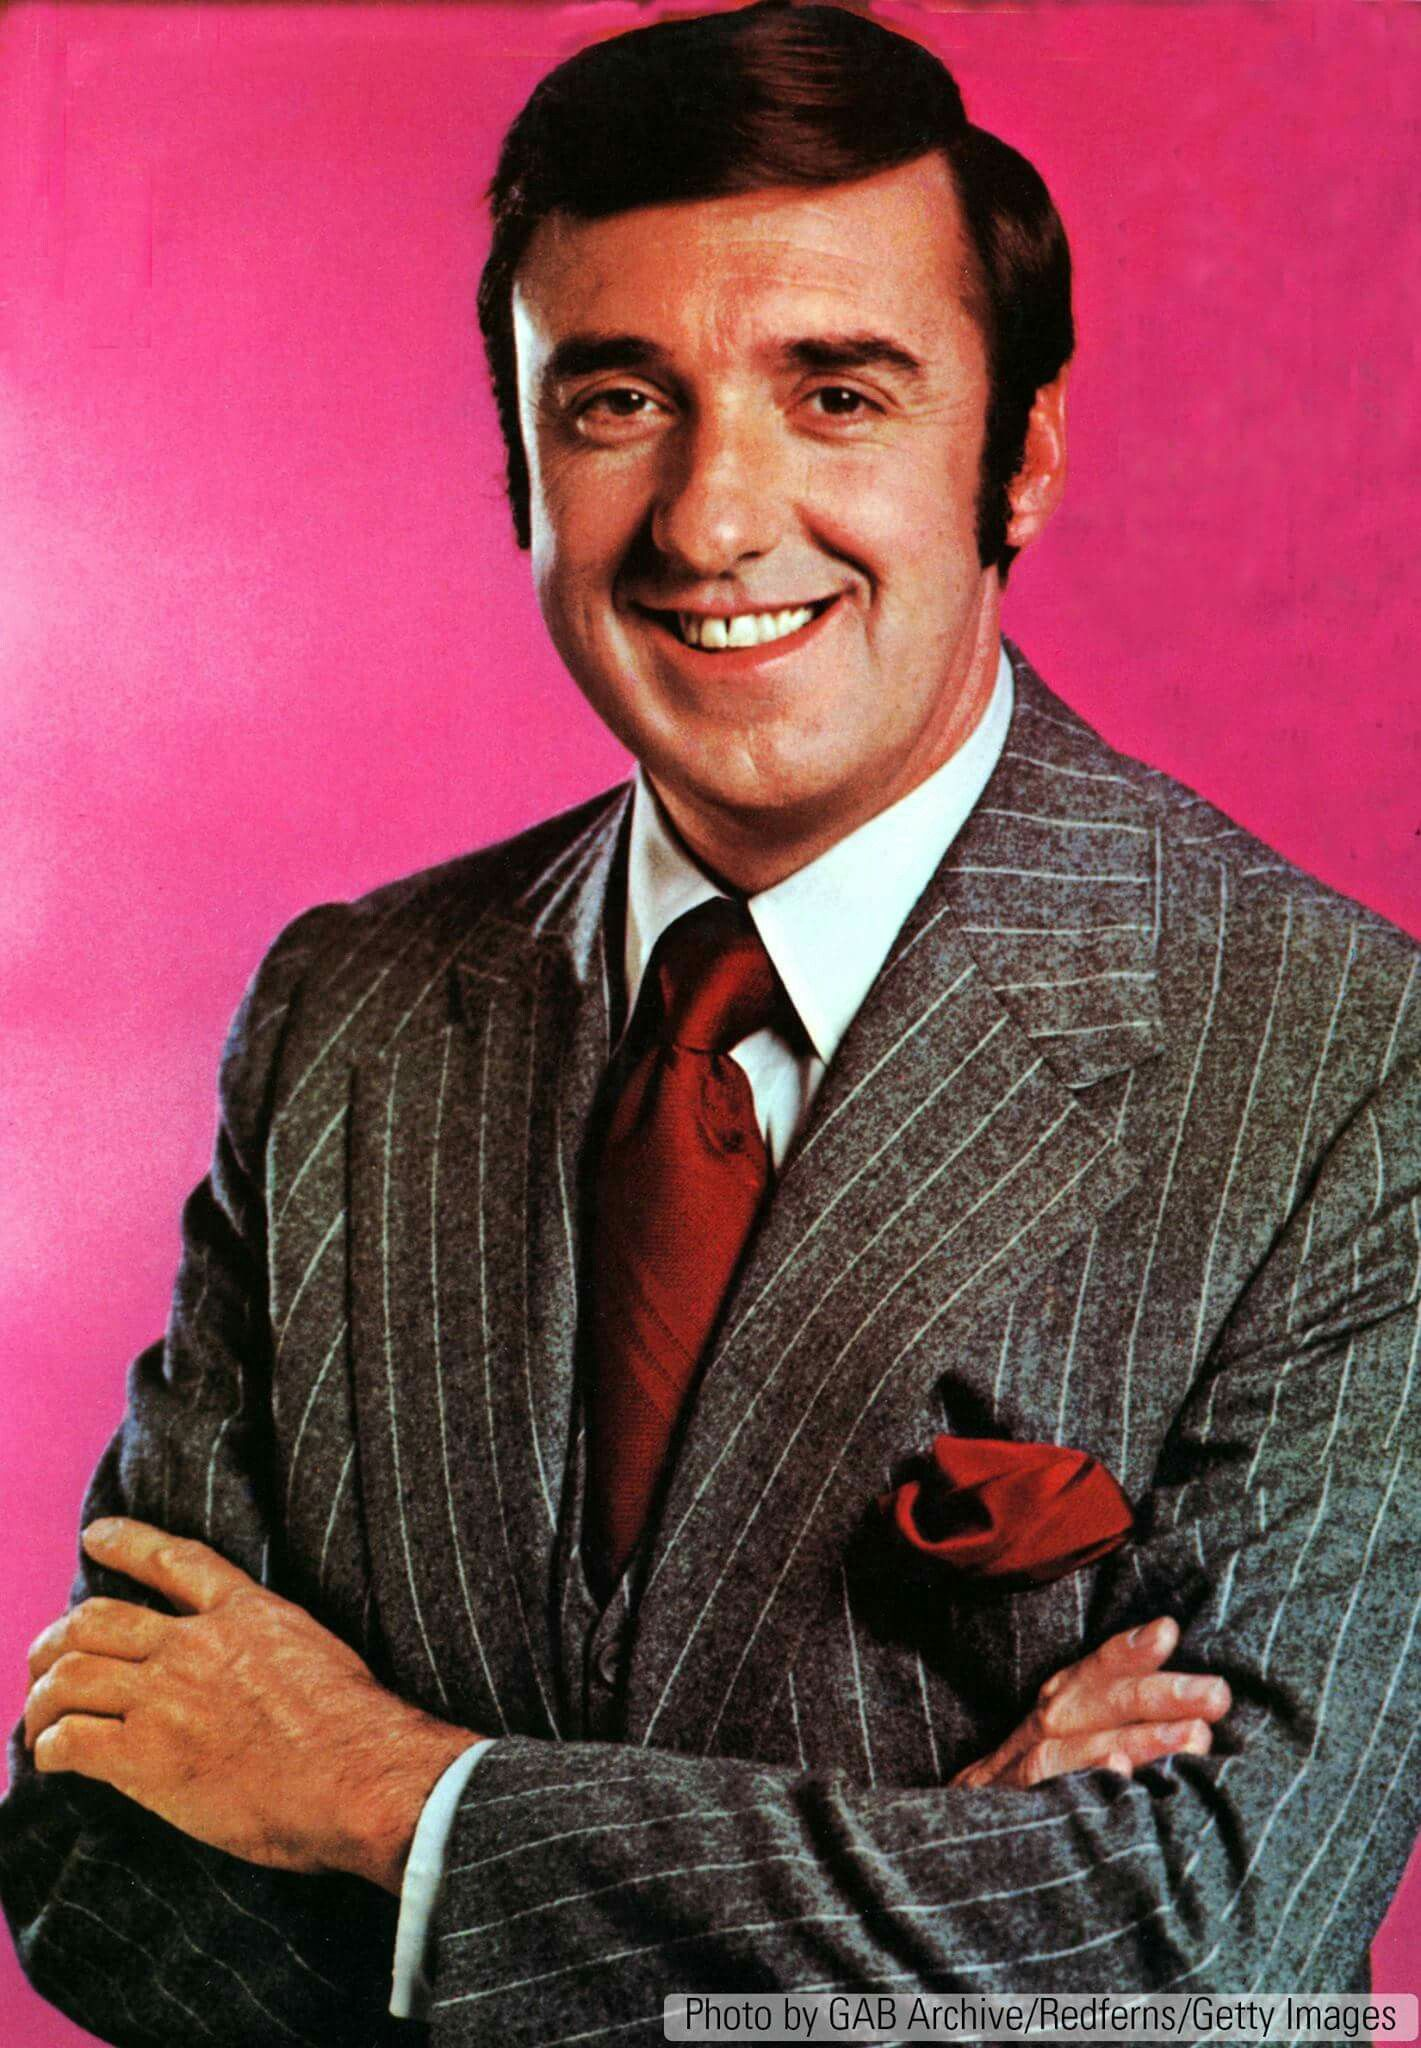 Out Gay Jim Nabors, The Cheerful Gomer Pyle On Two Tv Series, Dies